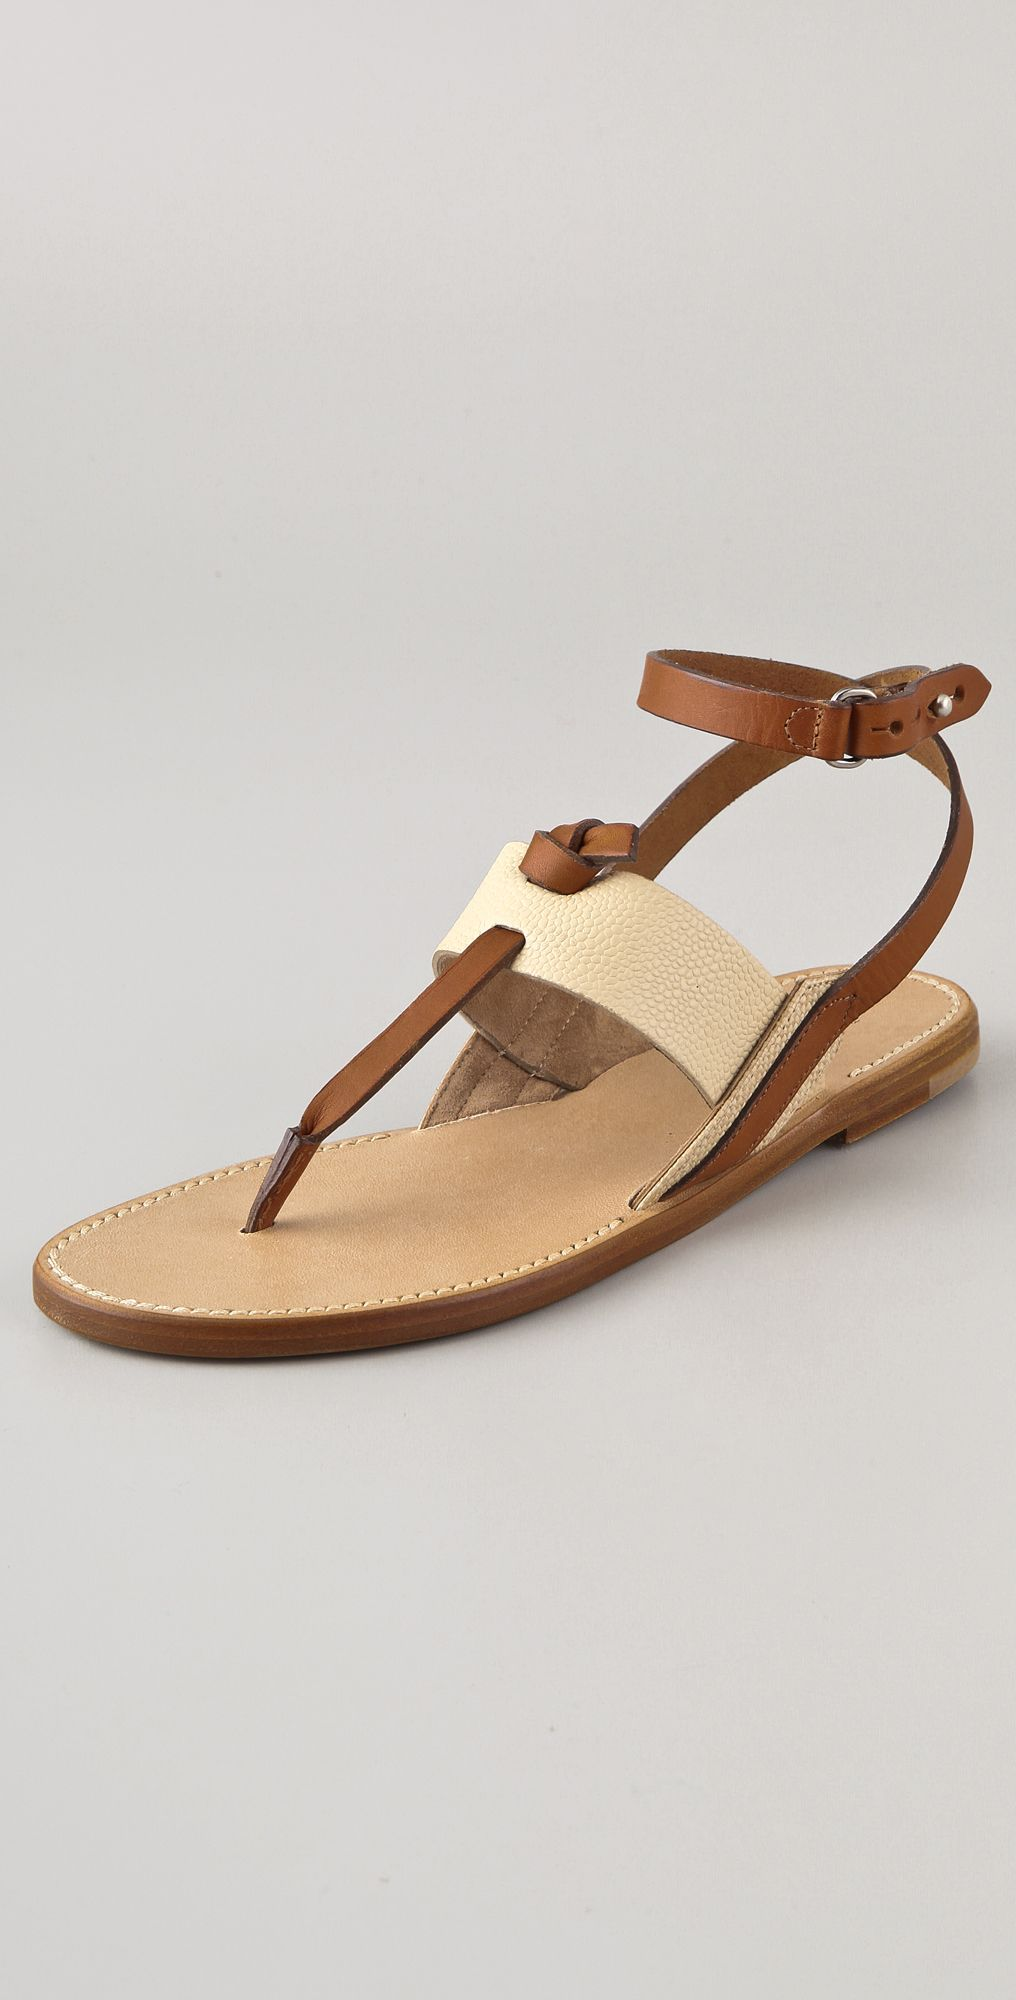 Rag & Bone Sigrid Leather Sandals discount low shipping fee sZ5IKOG